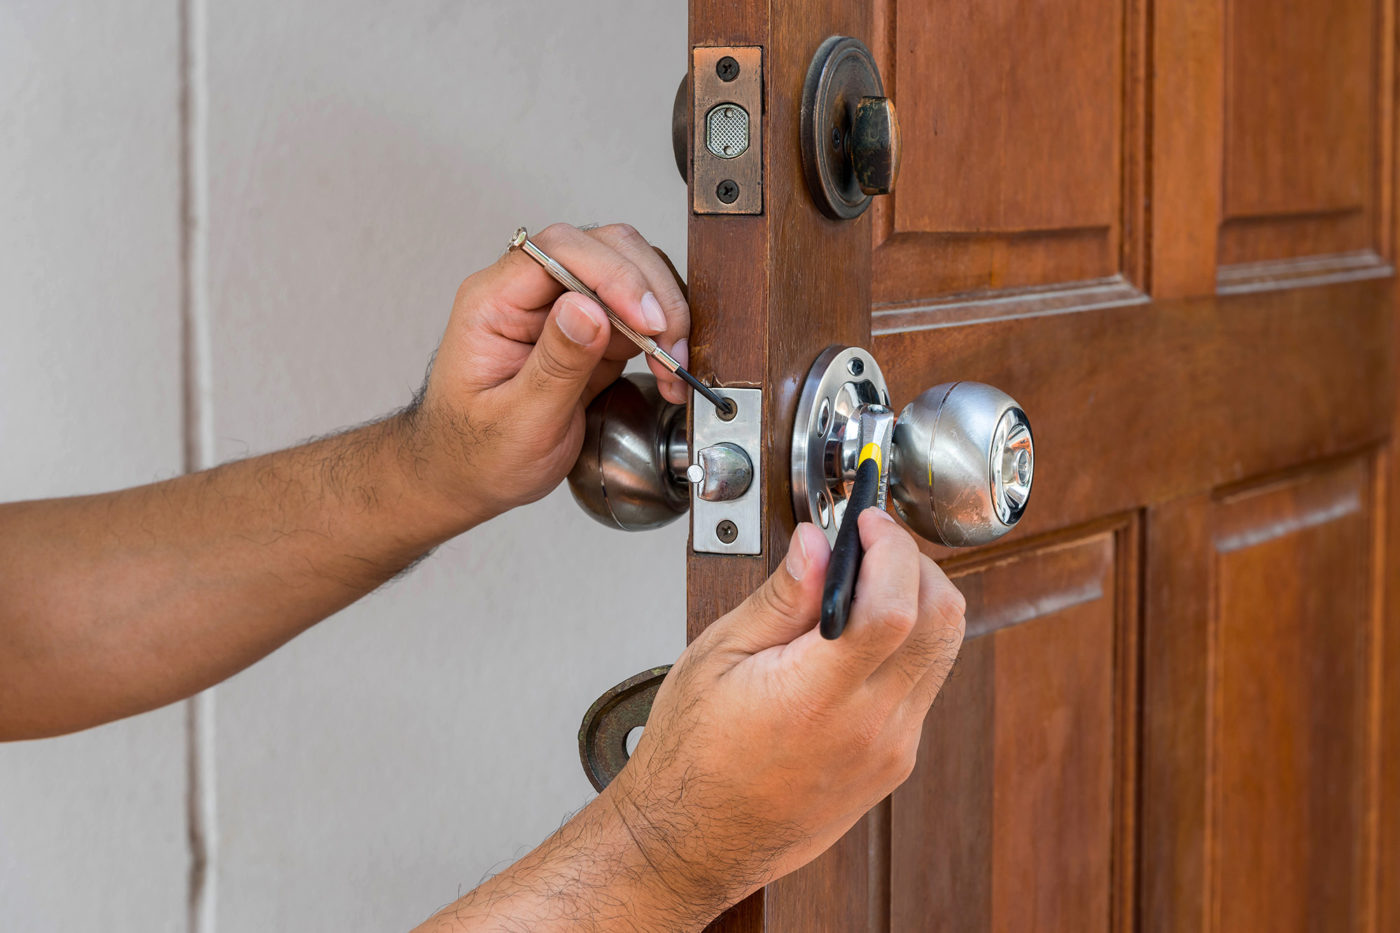 Home Security Improvements, Tips for Picking a Locksmith, pro locksmith, pro locksmith san diego, pro locksmiths, lock smith san diego, locksmiths san diego, locksmith san diego, Locksmith, Locksmith near me, san diego locksmith, san diego locksmiths, ring doorbell installation, auto locksmith san diego, san diego auto locksmith, car locksmith san diego, locksmith el cajon, locksmith chula vista, cheap locksmith, 24 hour car locksmith, auto locksmith, Lock repair, commercial locksmith, lock out services, emergency locksmith, emergency locksmith services